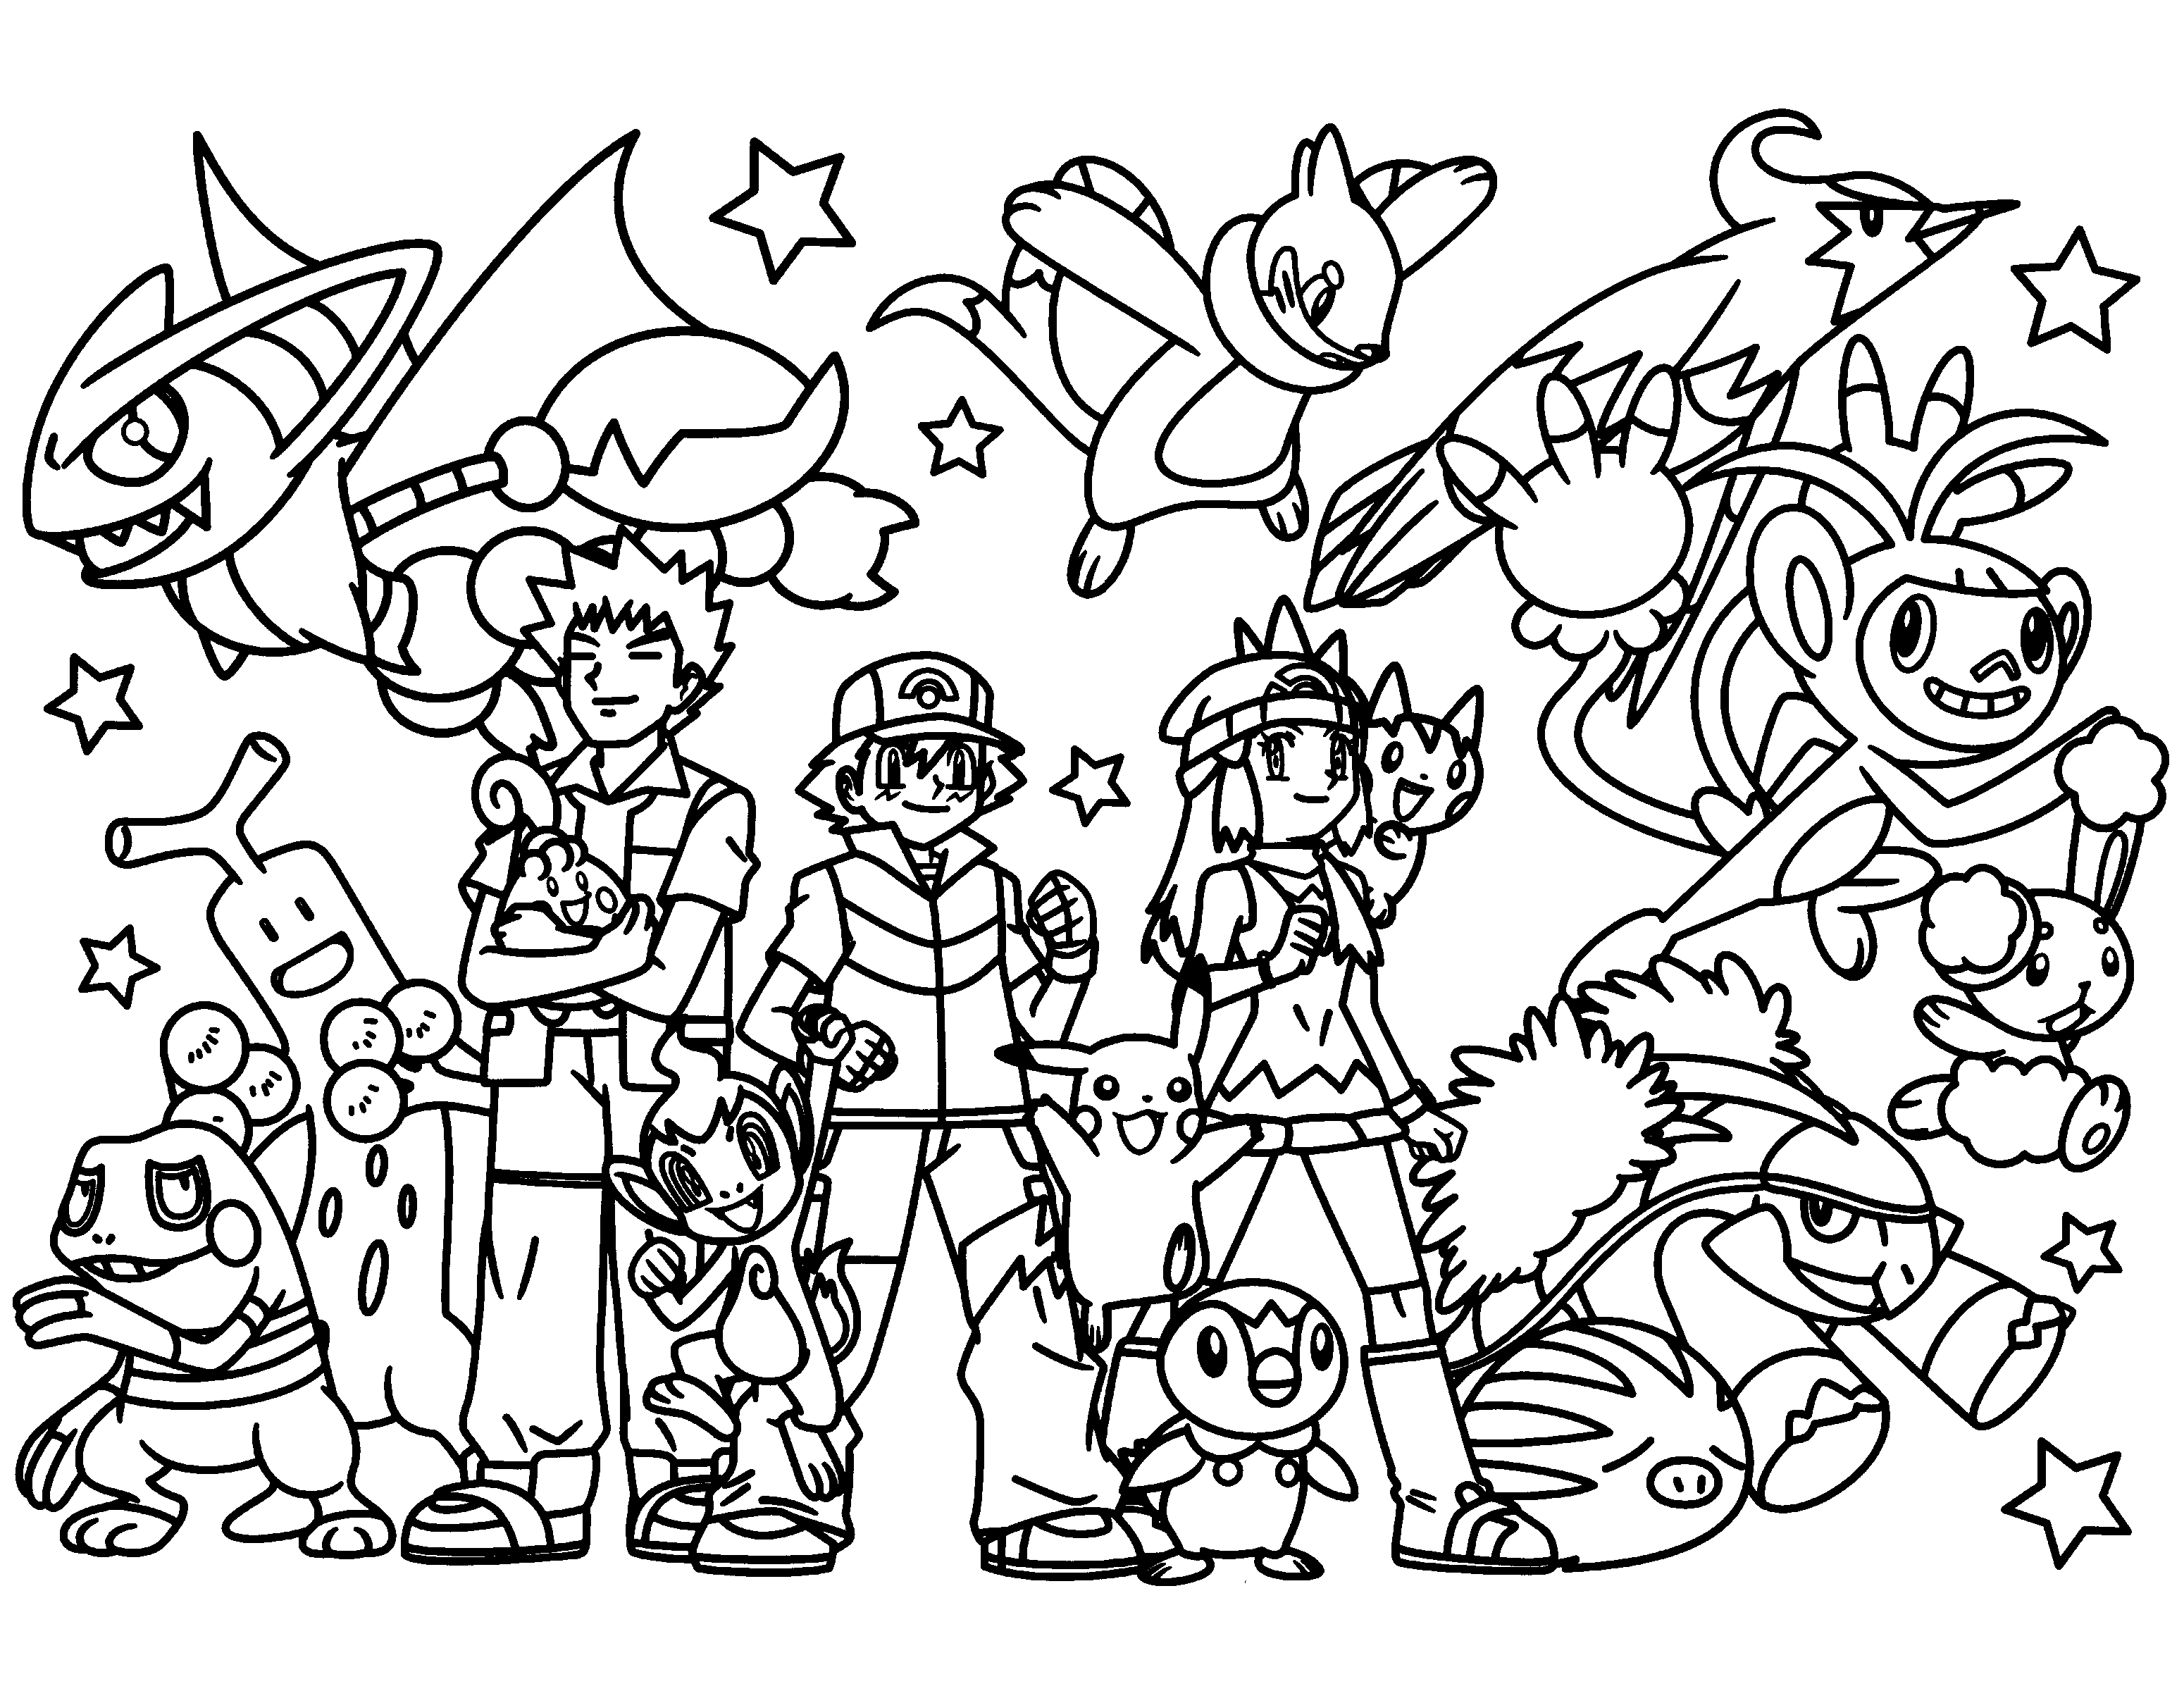 pokemon colouring in sheets all pokemon coloring pages download and print for free pokemon in colouring sheets